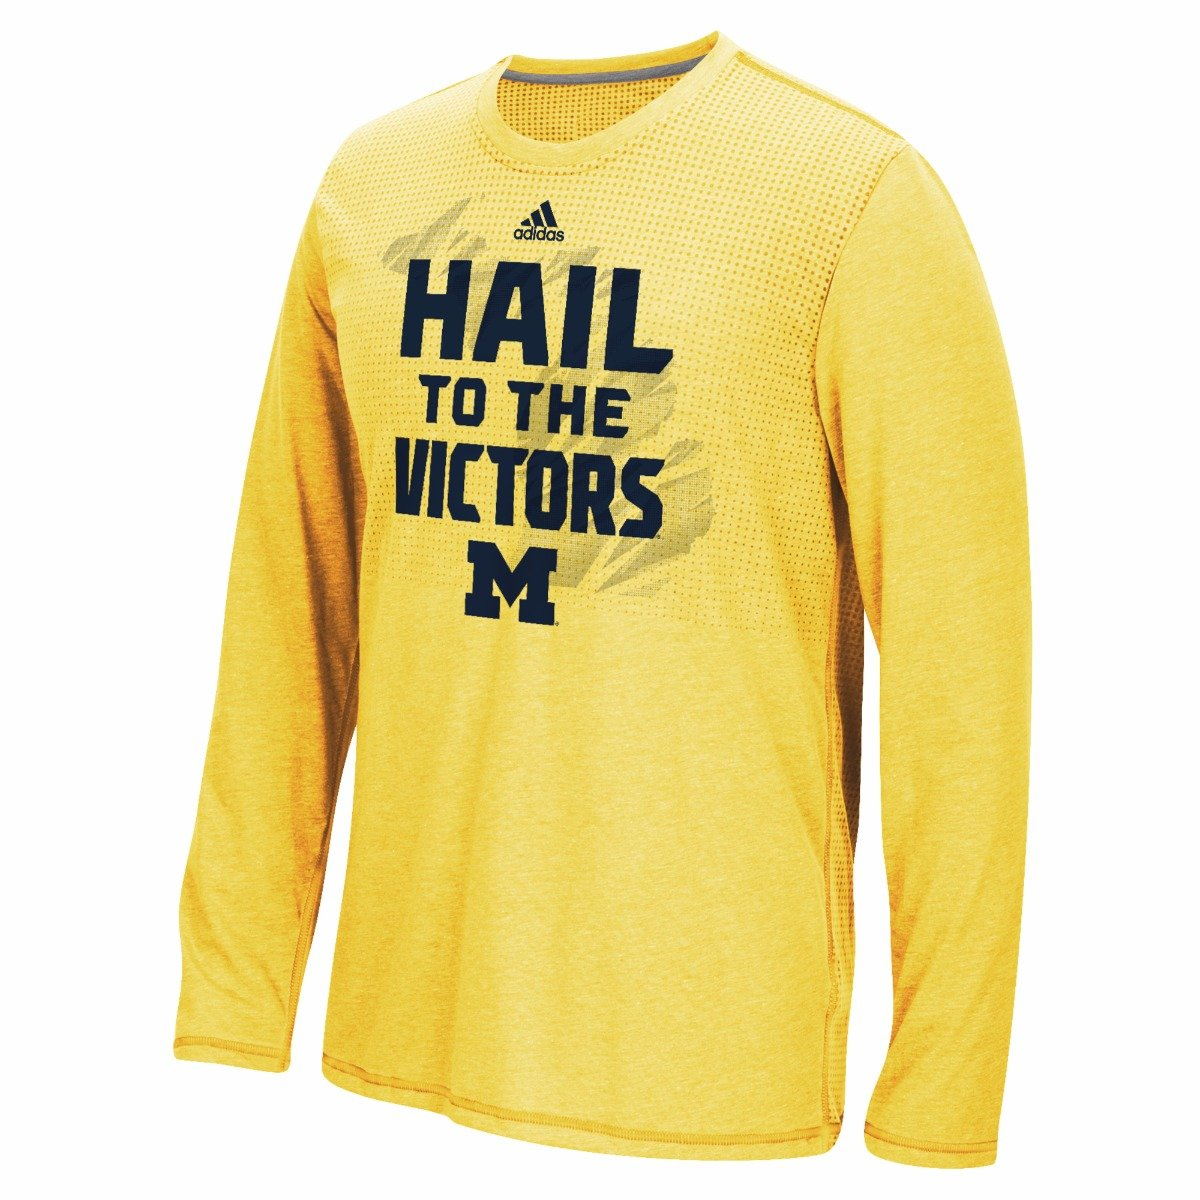 e1dd13cdb Amazon.com   Michigan Wolverines NCAA Adidas Men s Gold Sideline Energy  Aeroknit Long Sleeve T-Shirt (2XL)   Sports   Outdoors